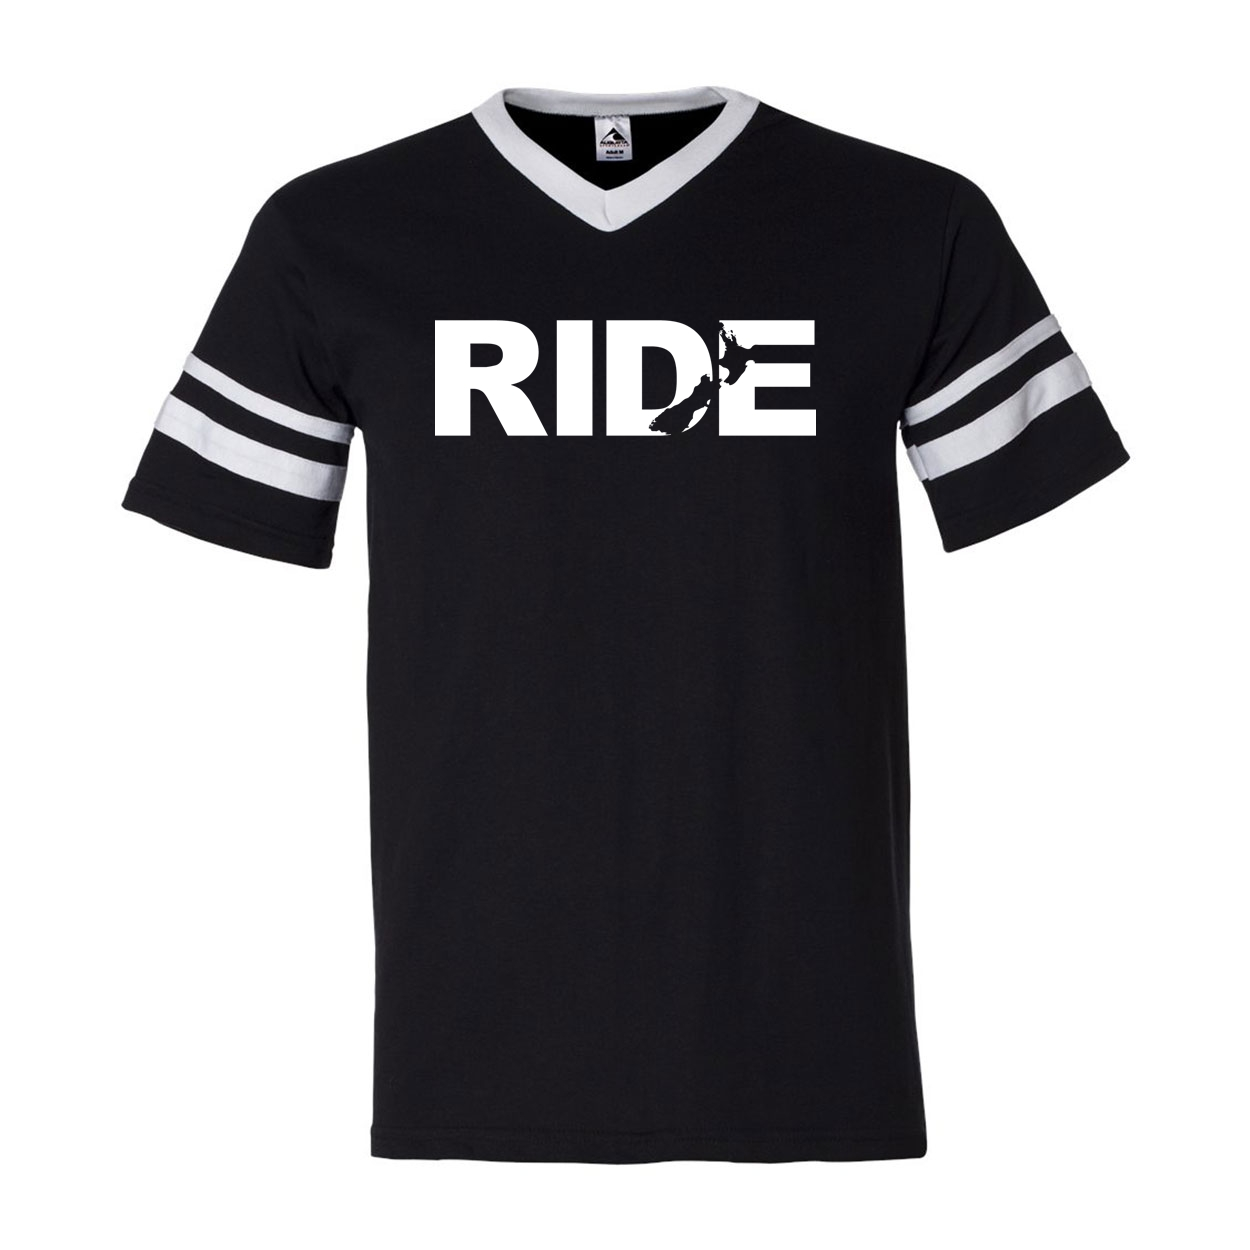 Ride New Zealand Classic Premium Striped Jersey T-Shirt Black/White (White Logo)